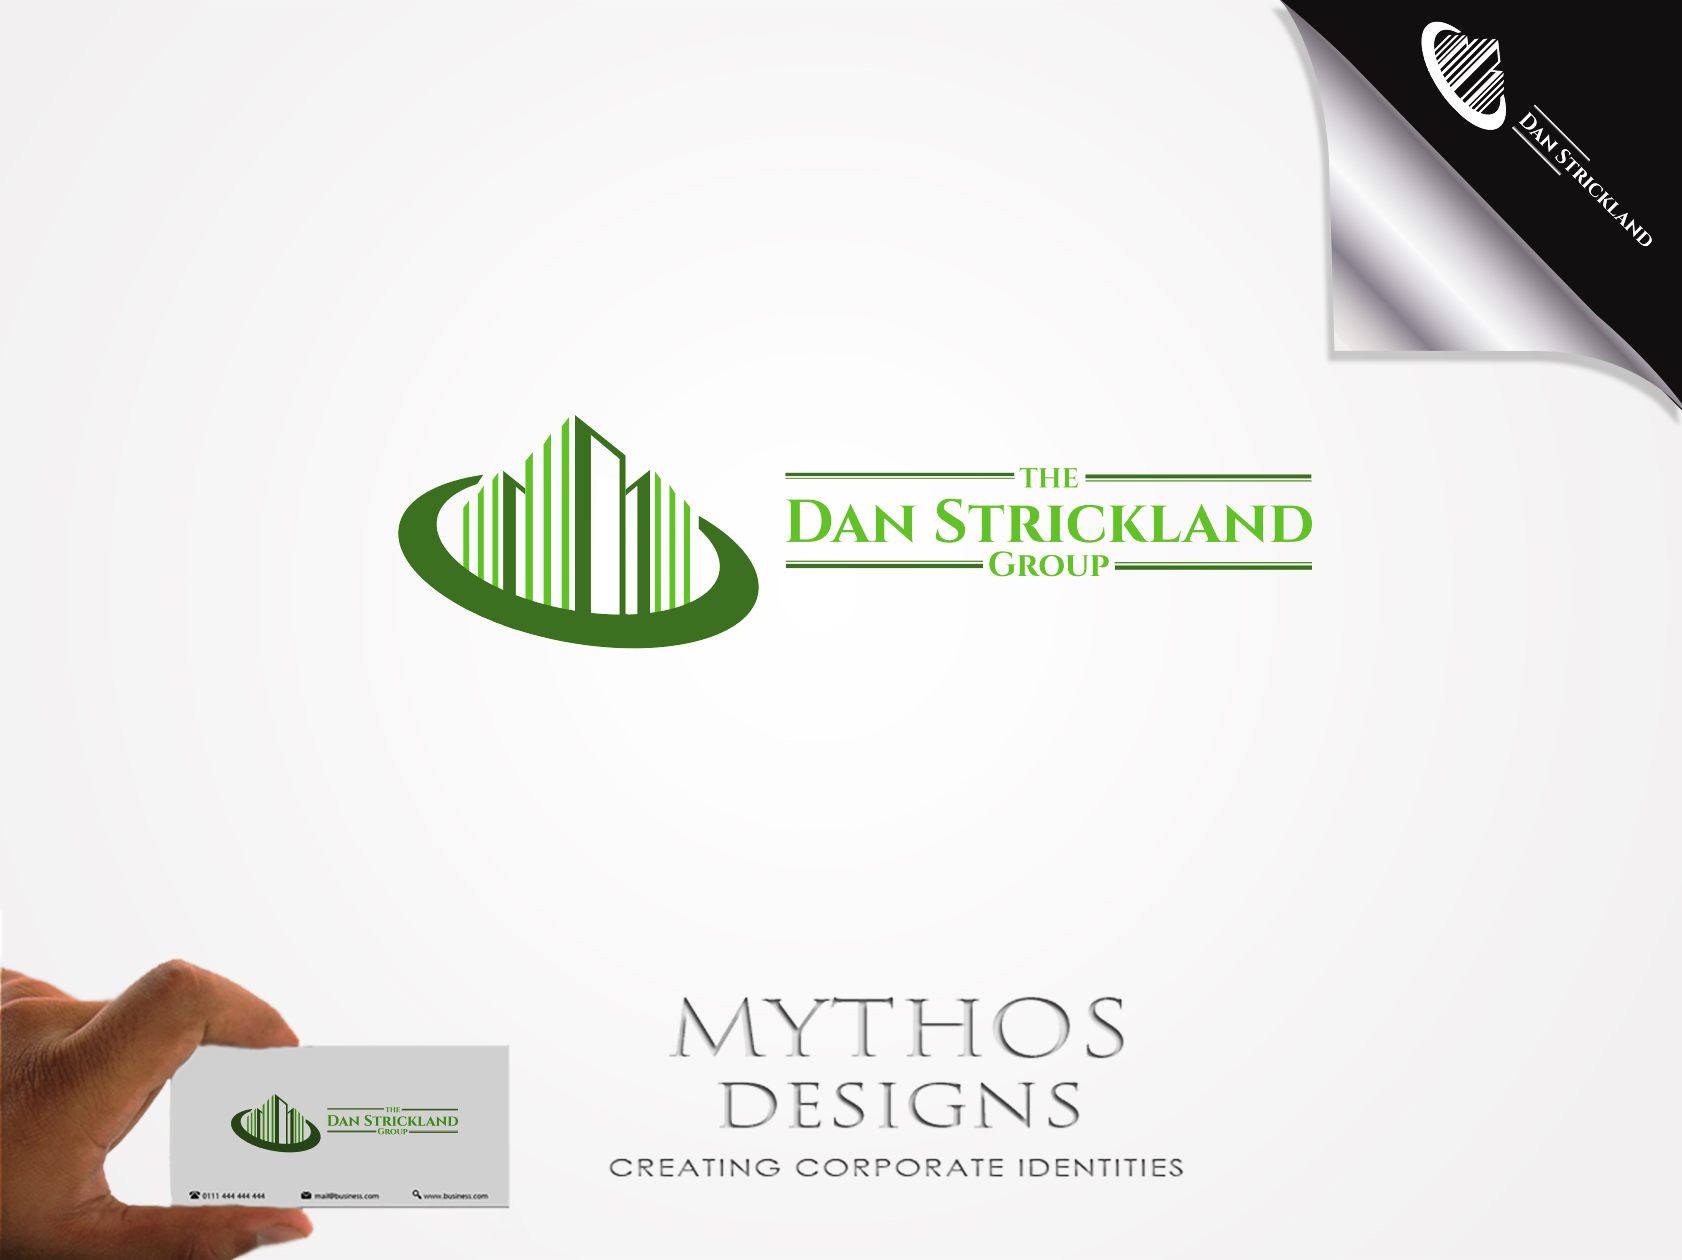 Logo Design by Mythos Designs - Entry No. 116 in the Logo Design Contest Creative Logo Design for The Dan Strickland Group.